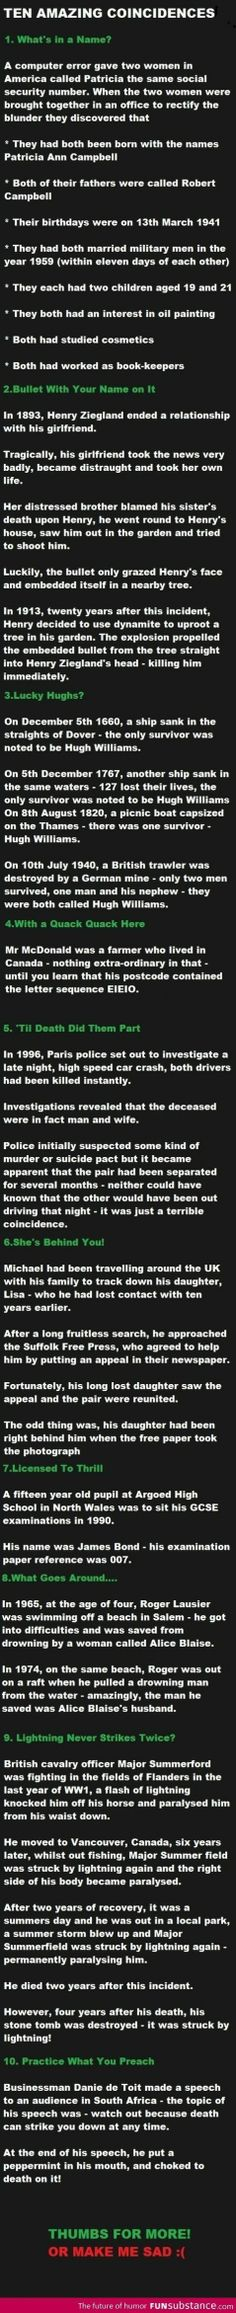 TEN AMAZING COINCIDENCES | Creepy...